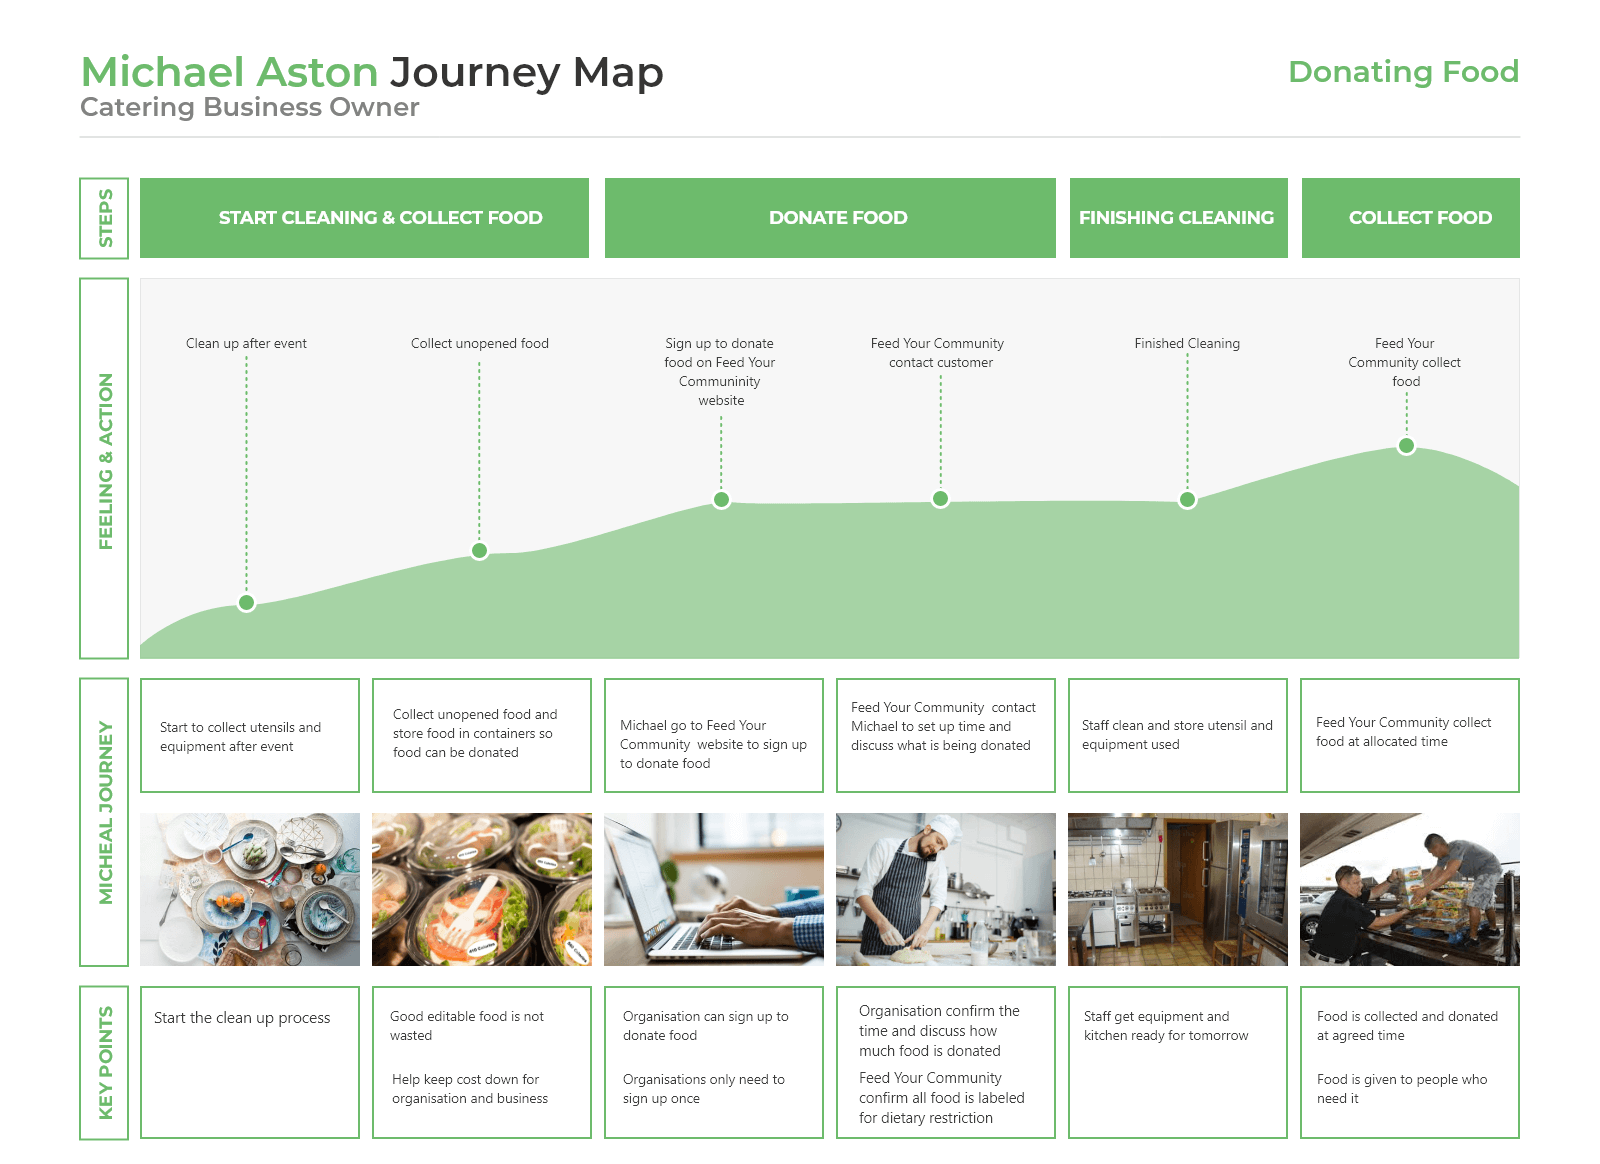 Michael Aston Journey Map